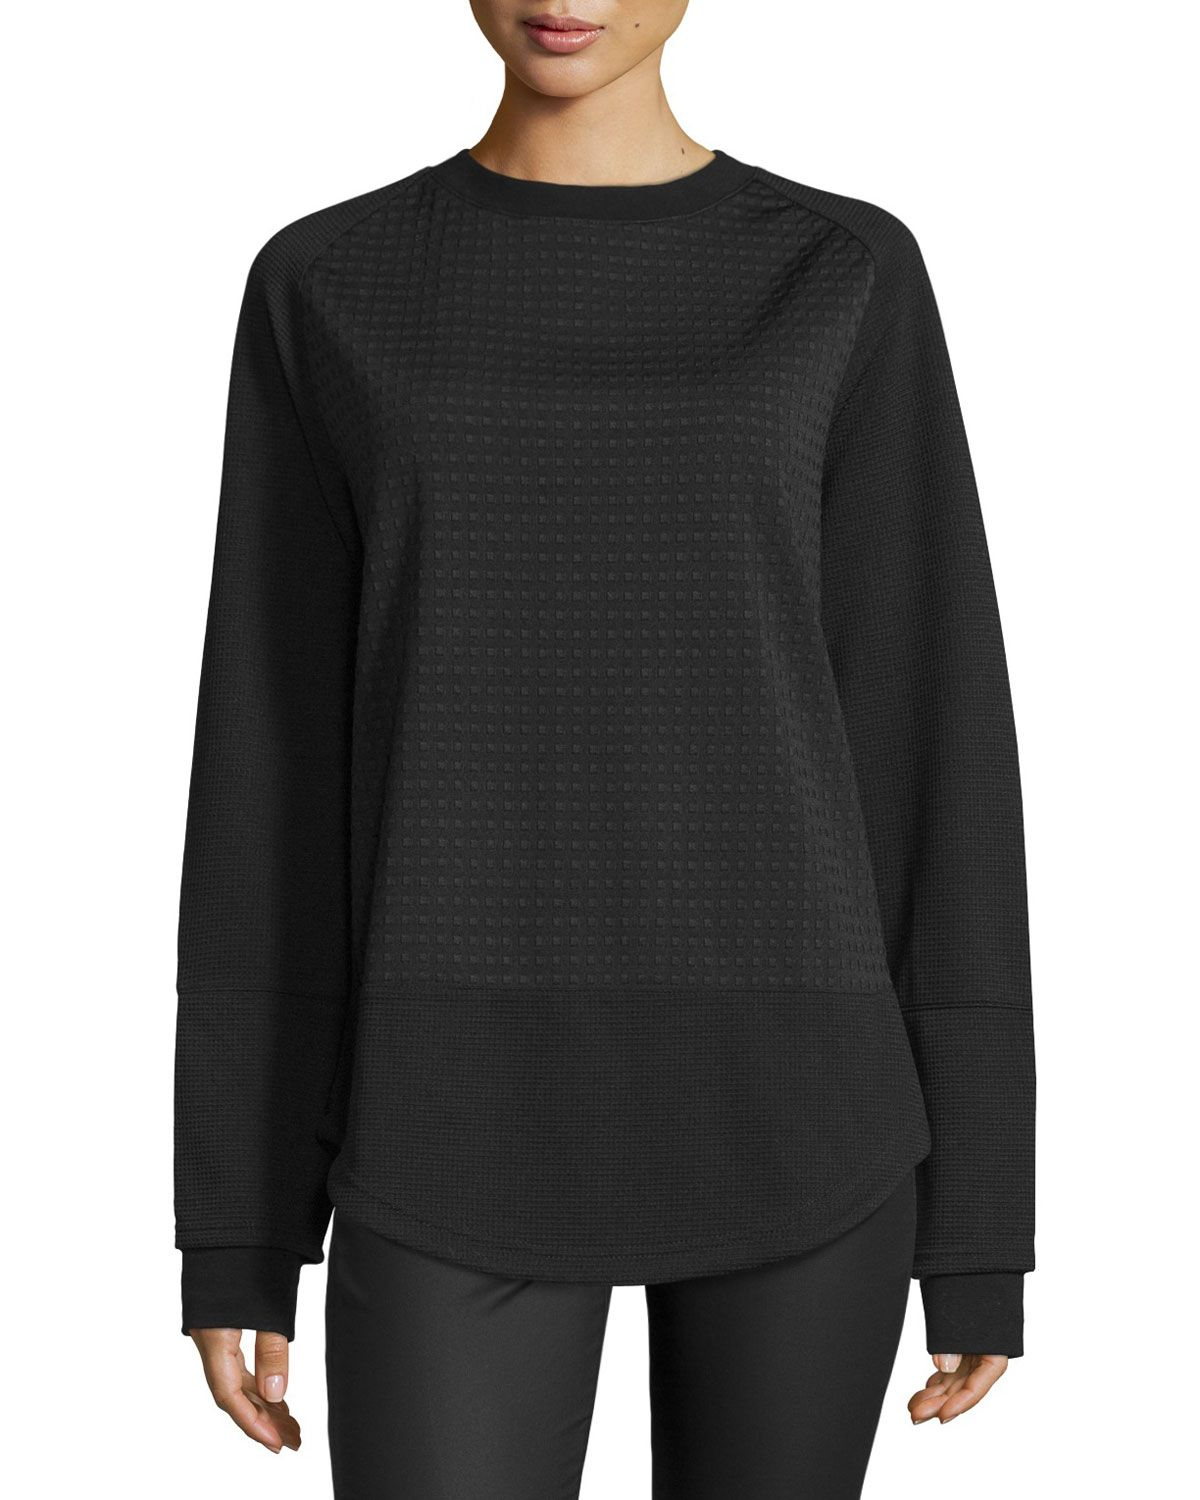 Longsleeve textured pullover black womenus size l opening